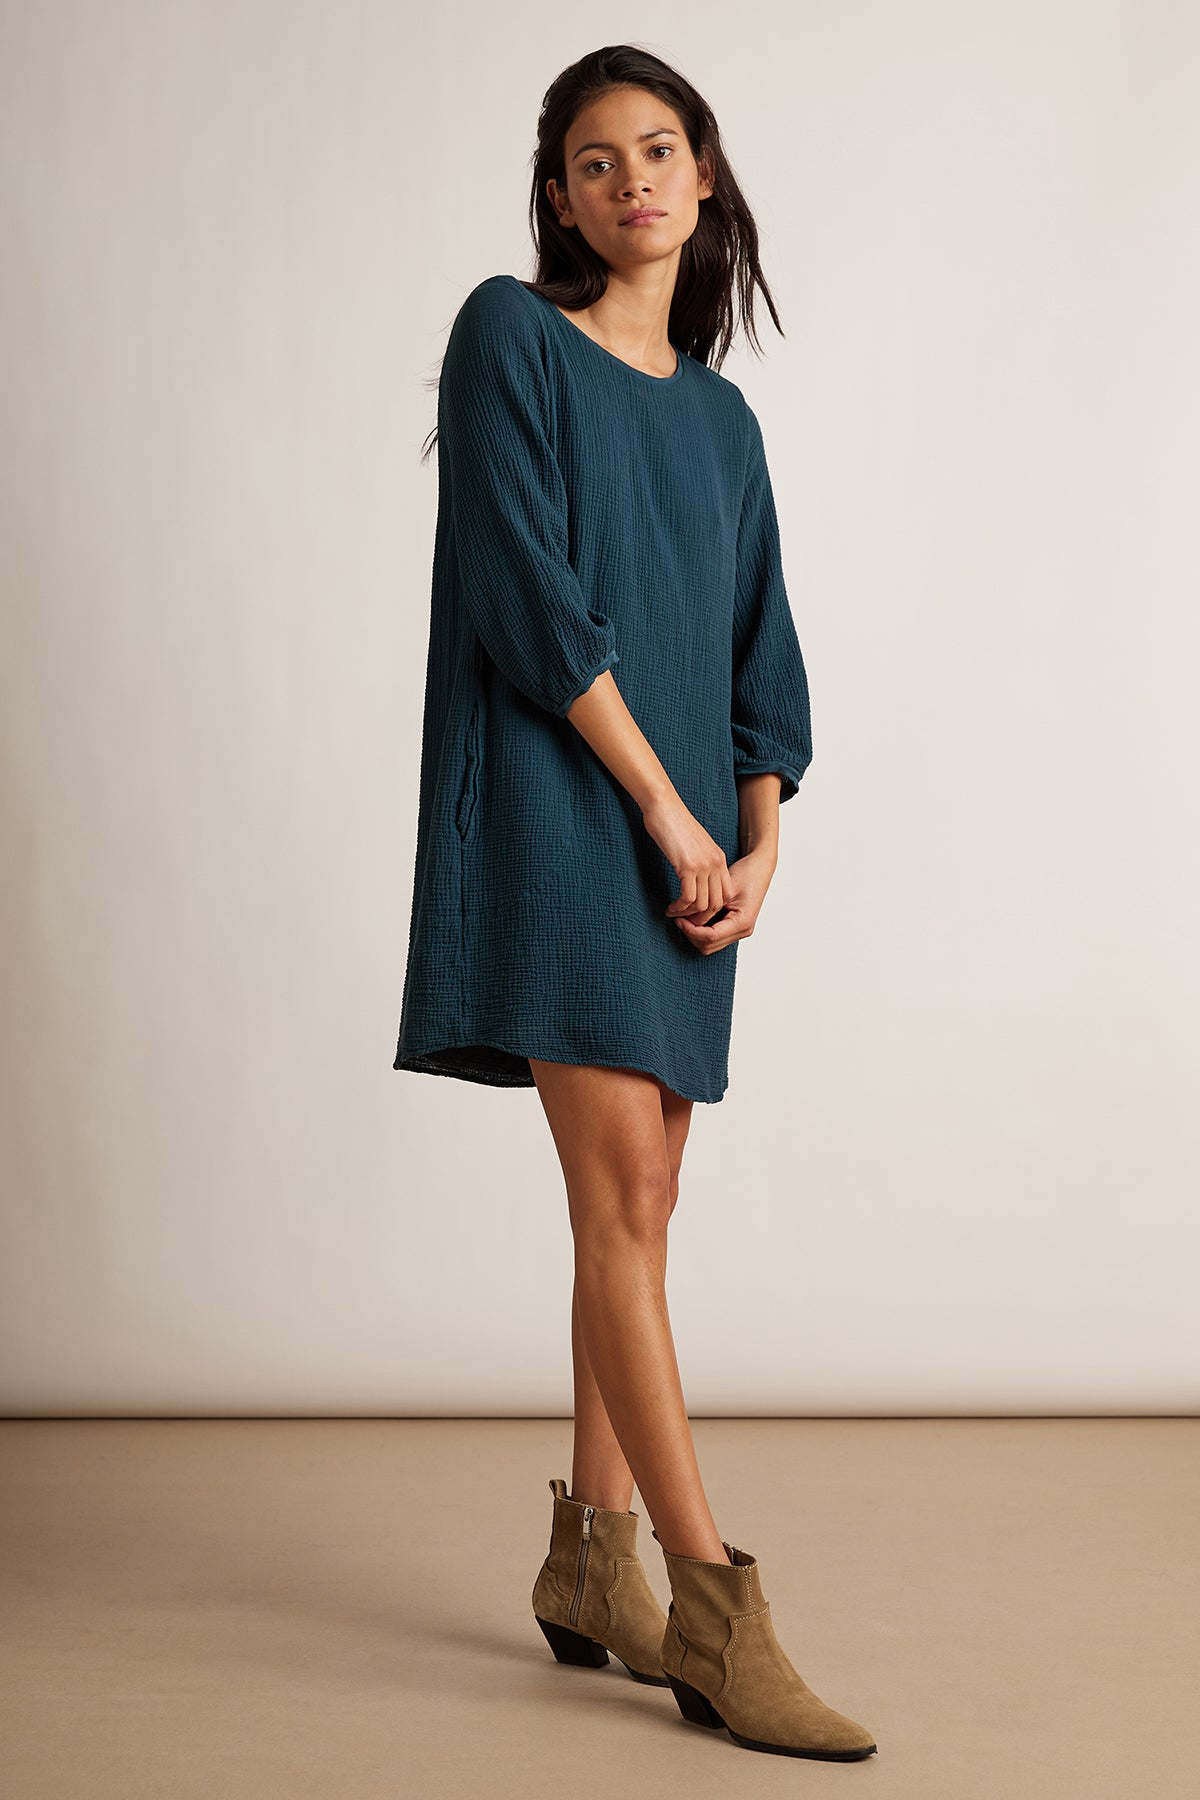 KINSLEE COTTON GAUZE 3/4 SLEEVE DRESS